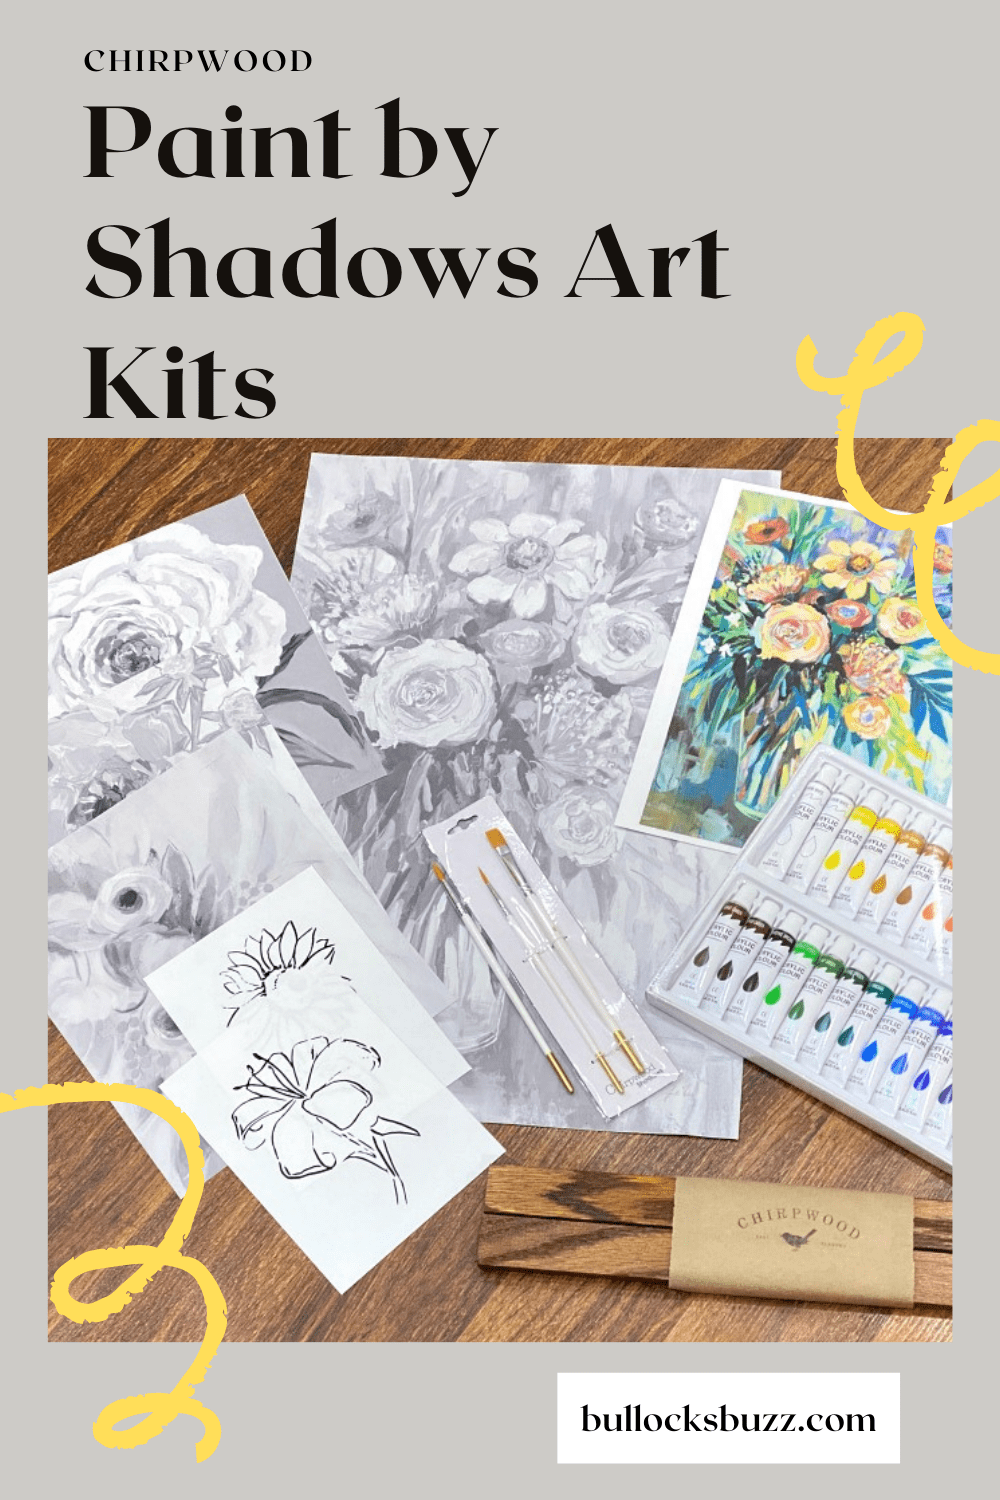 Painting by Shadows Art Kits from Chirpwood come with everything you need to paint gorgeous art.